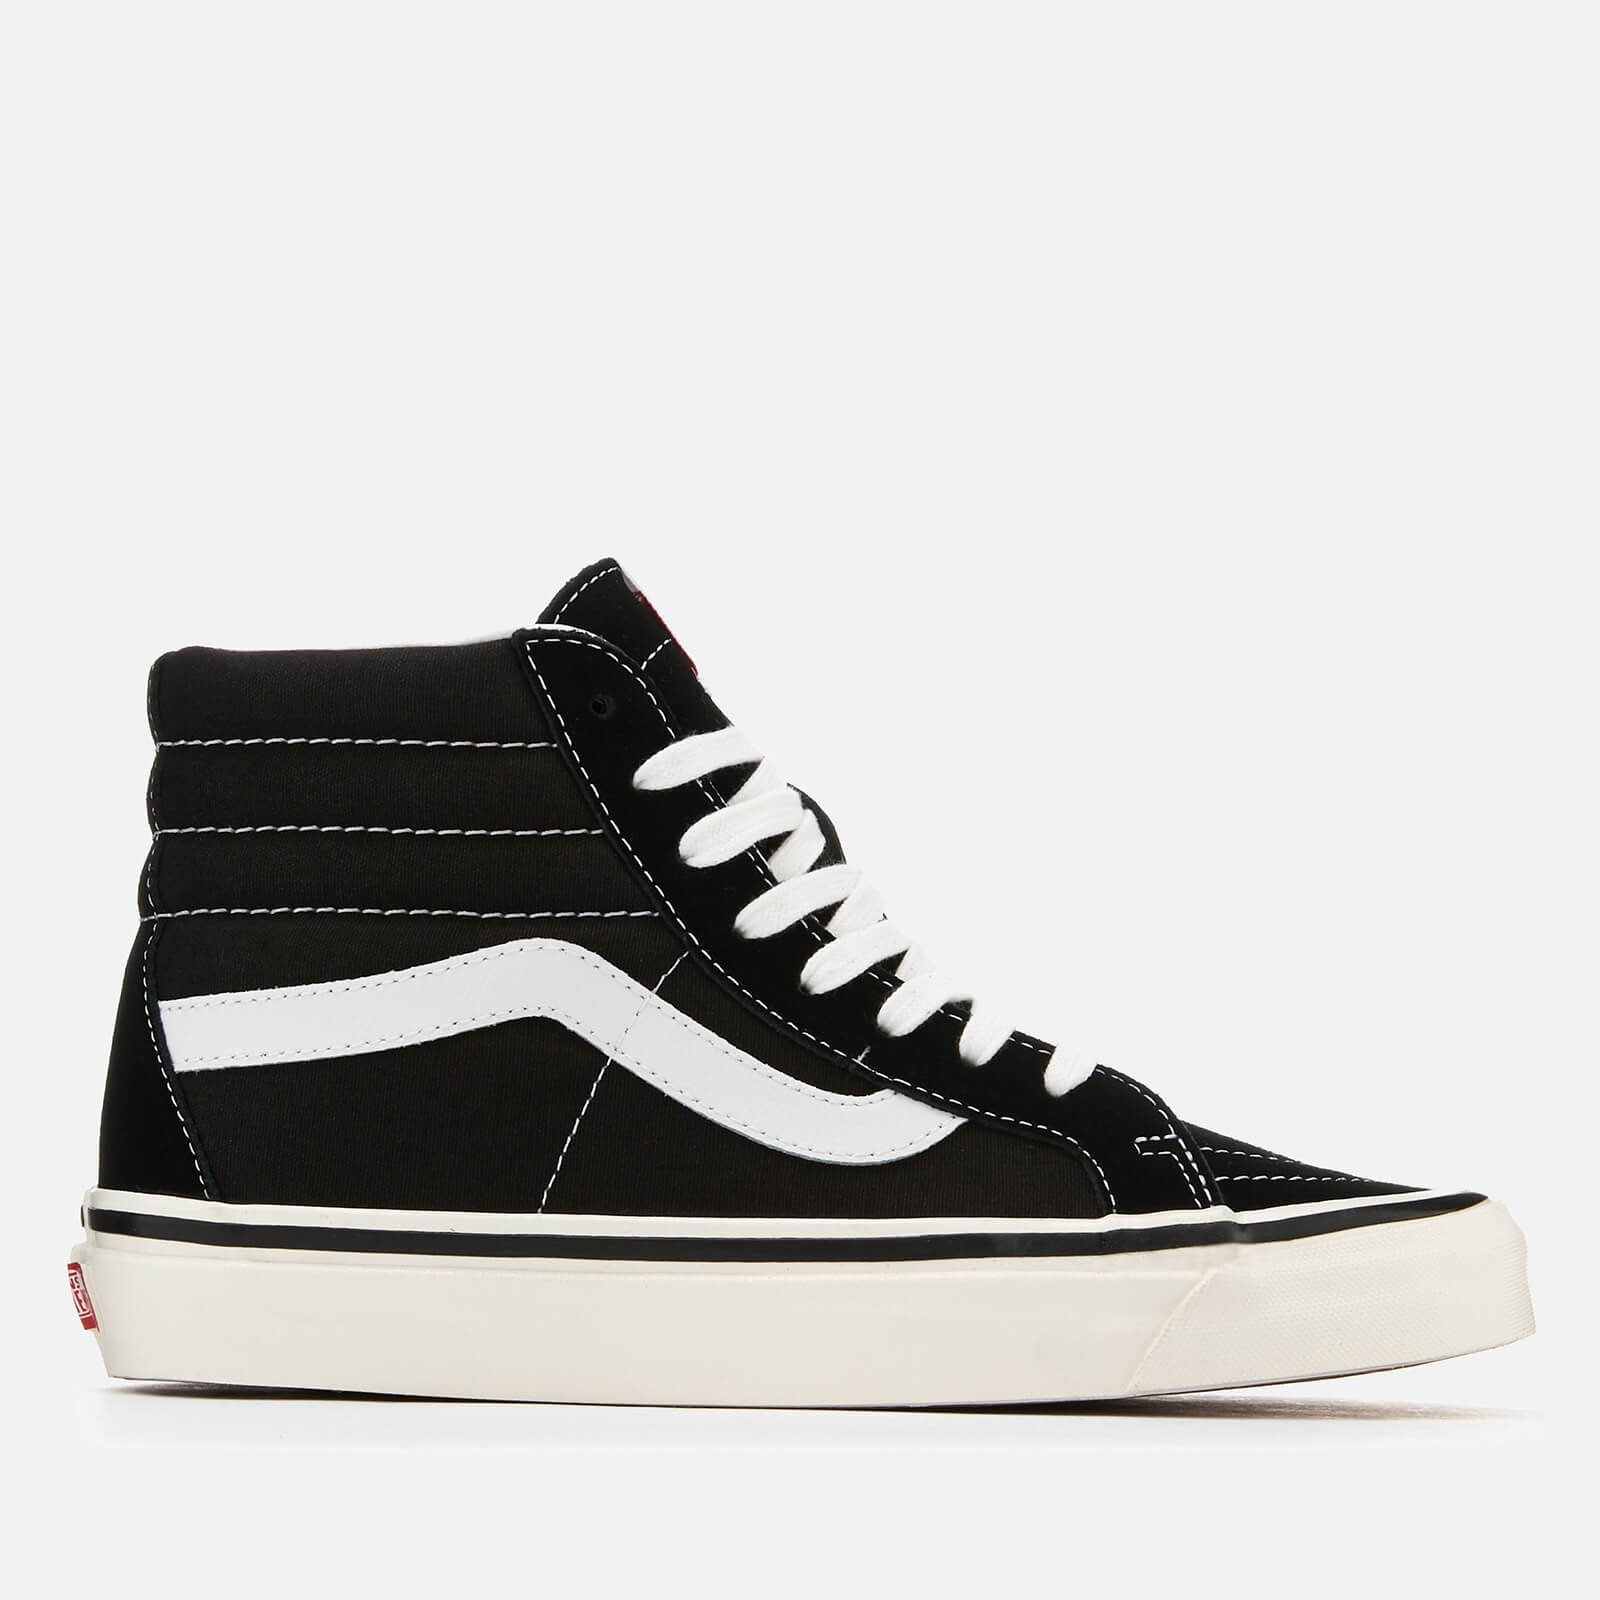 38b188f3f3fb19 Vans Anaheim Sk8-Hi 38 Dx Trainers - Black True White - Free UK ...